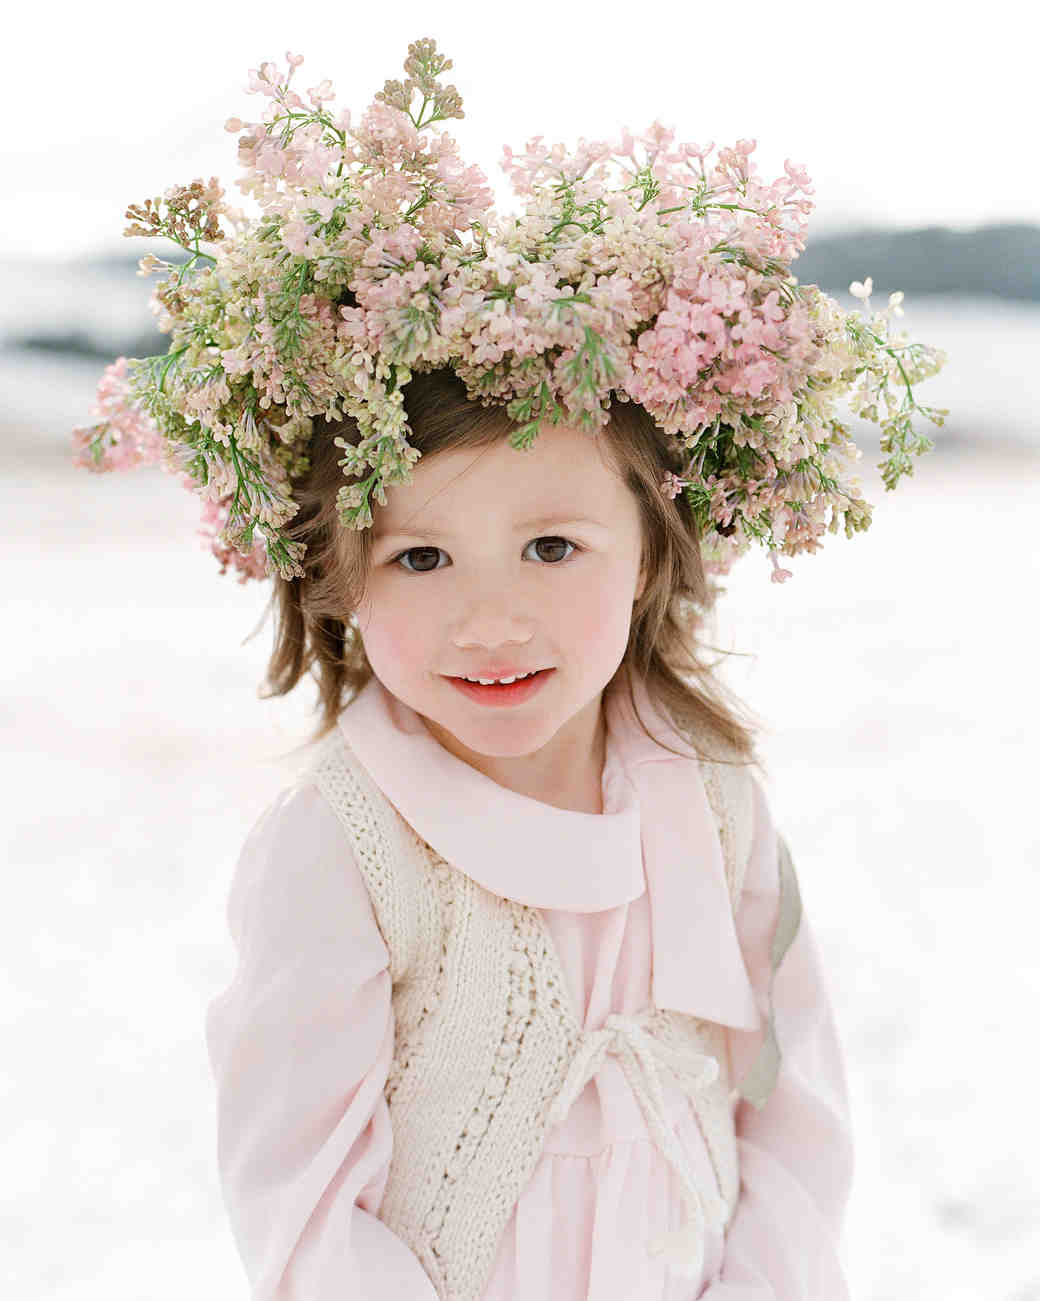 flower girl wearing pink dress and large flower crown